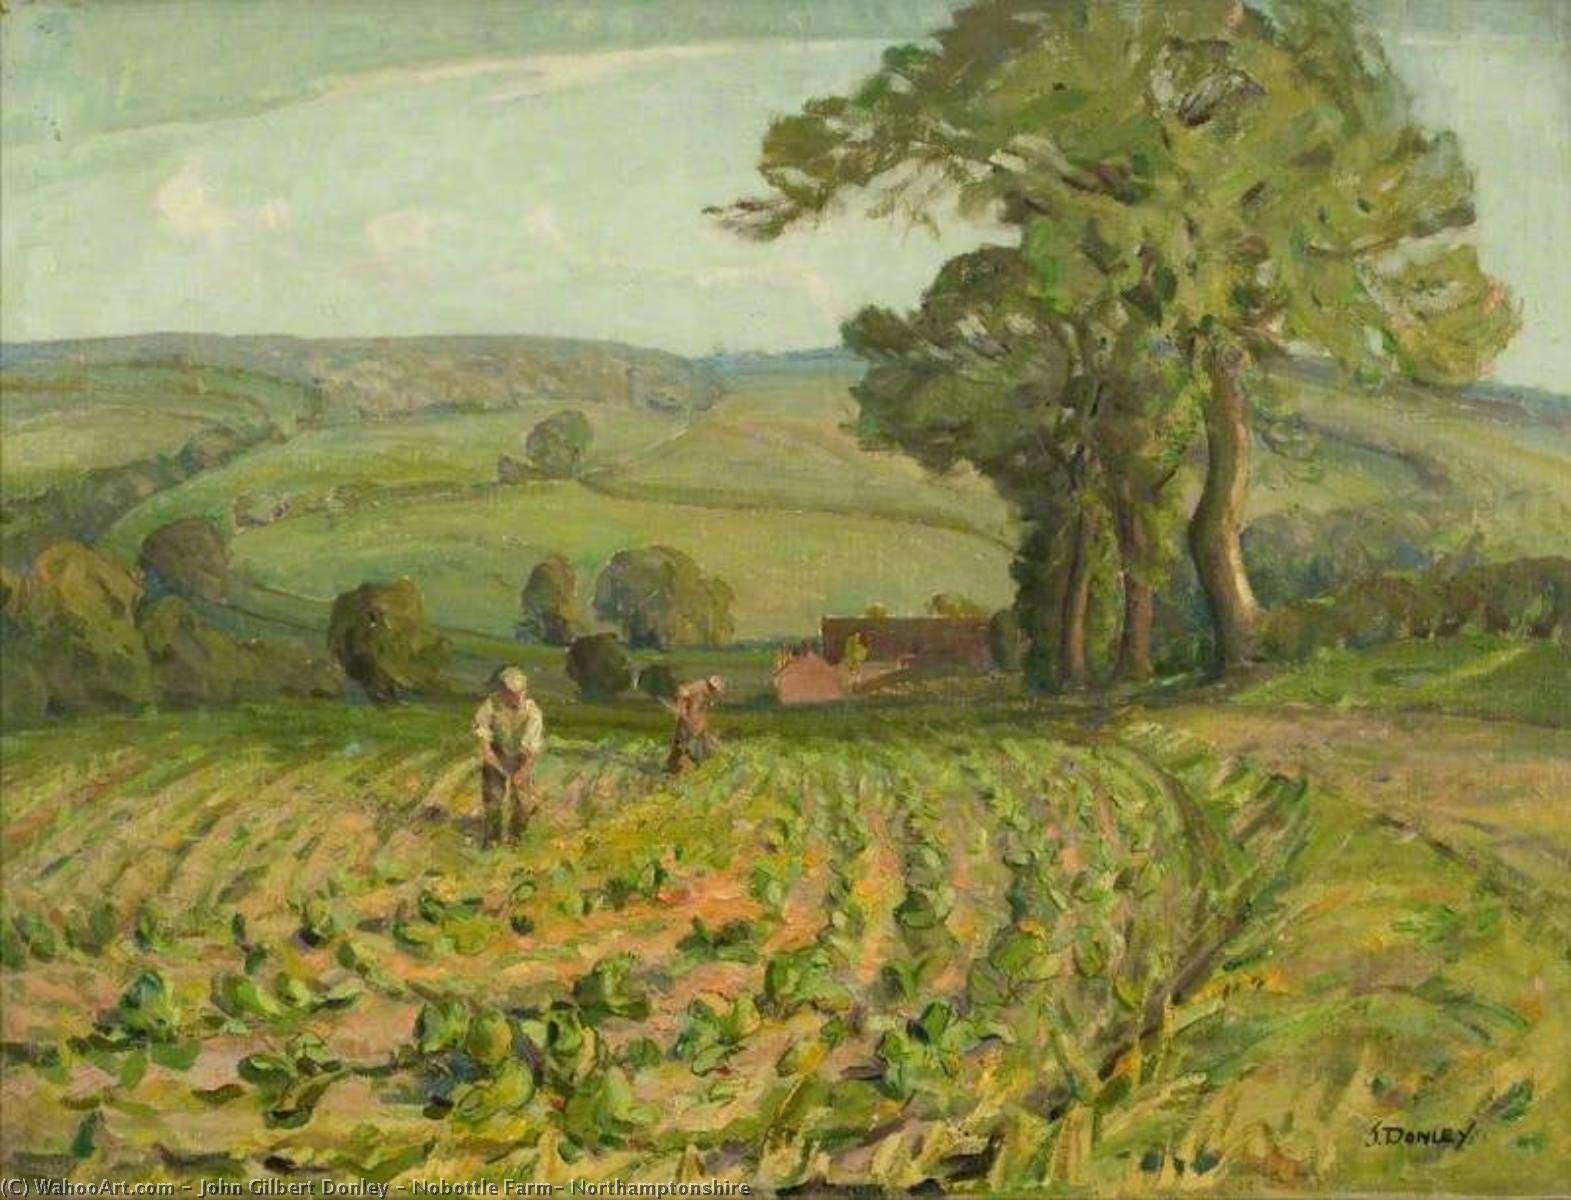 Nobottle Farm, Northamptonshire, Oil On Canvas by John Gilbert Donley